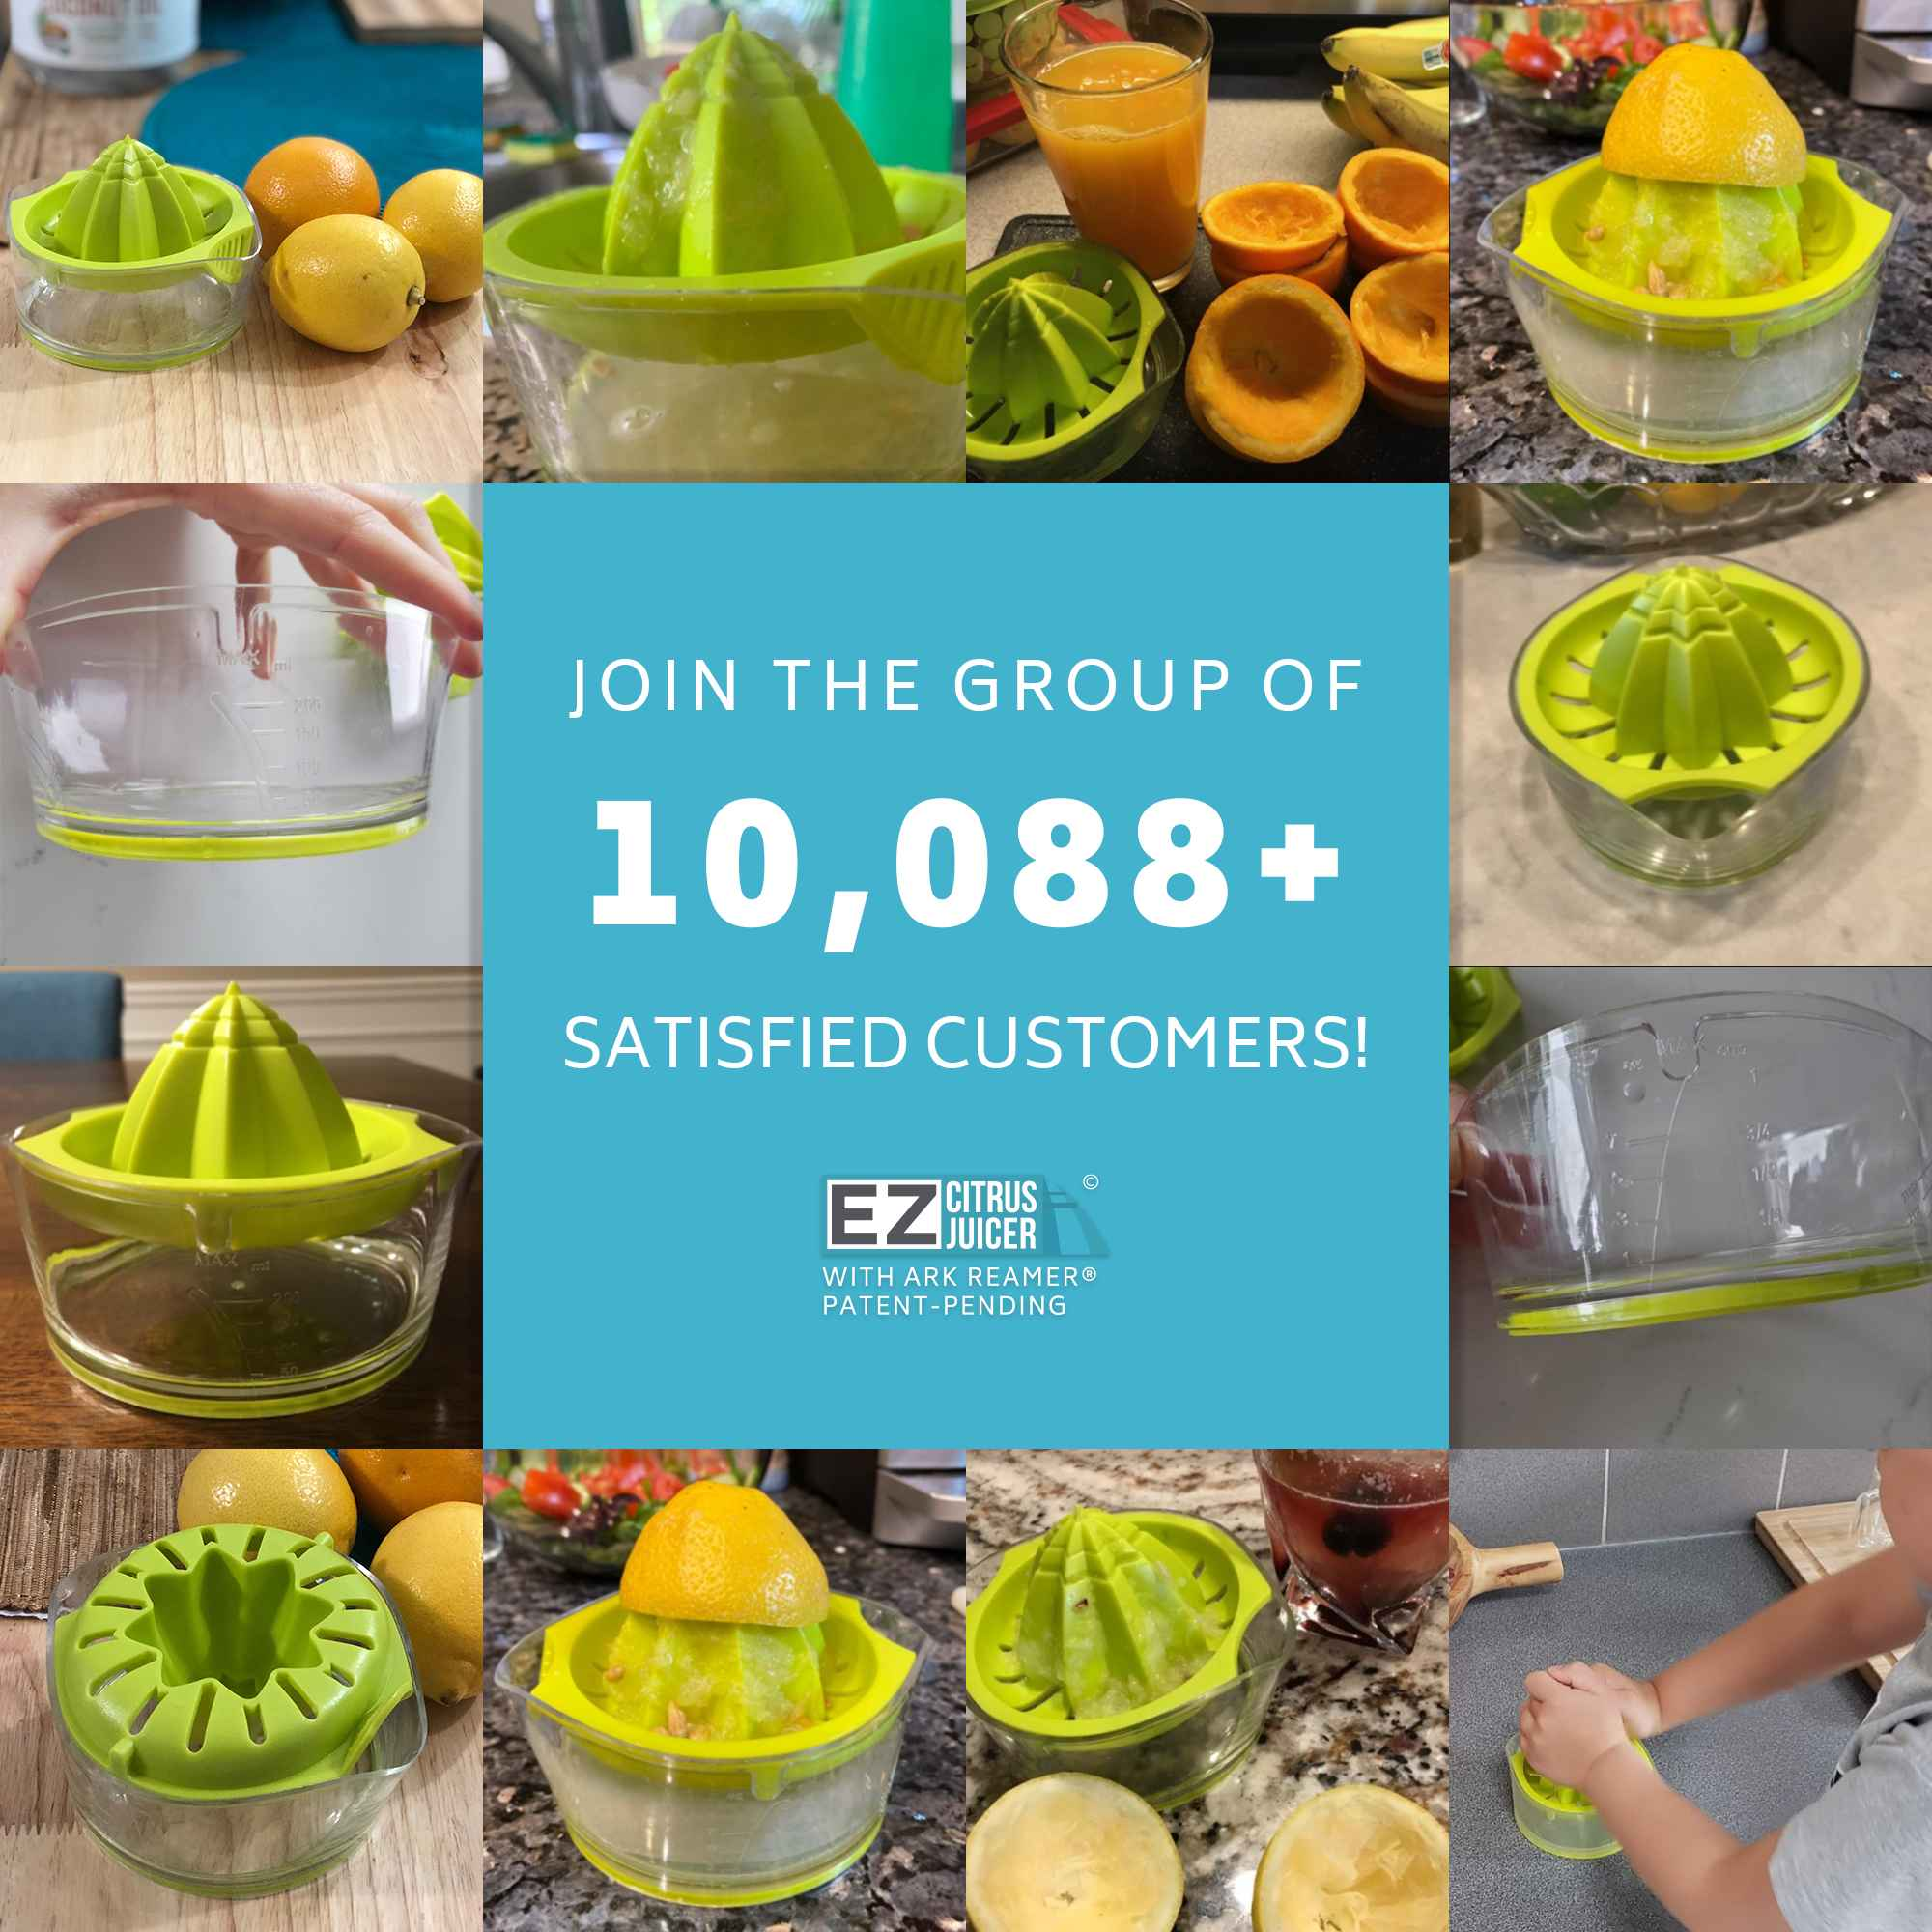 thousands of satisfied EZ Citrus Juicer customers, easy healthy lemon orange citrus juicing